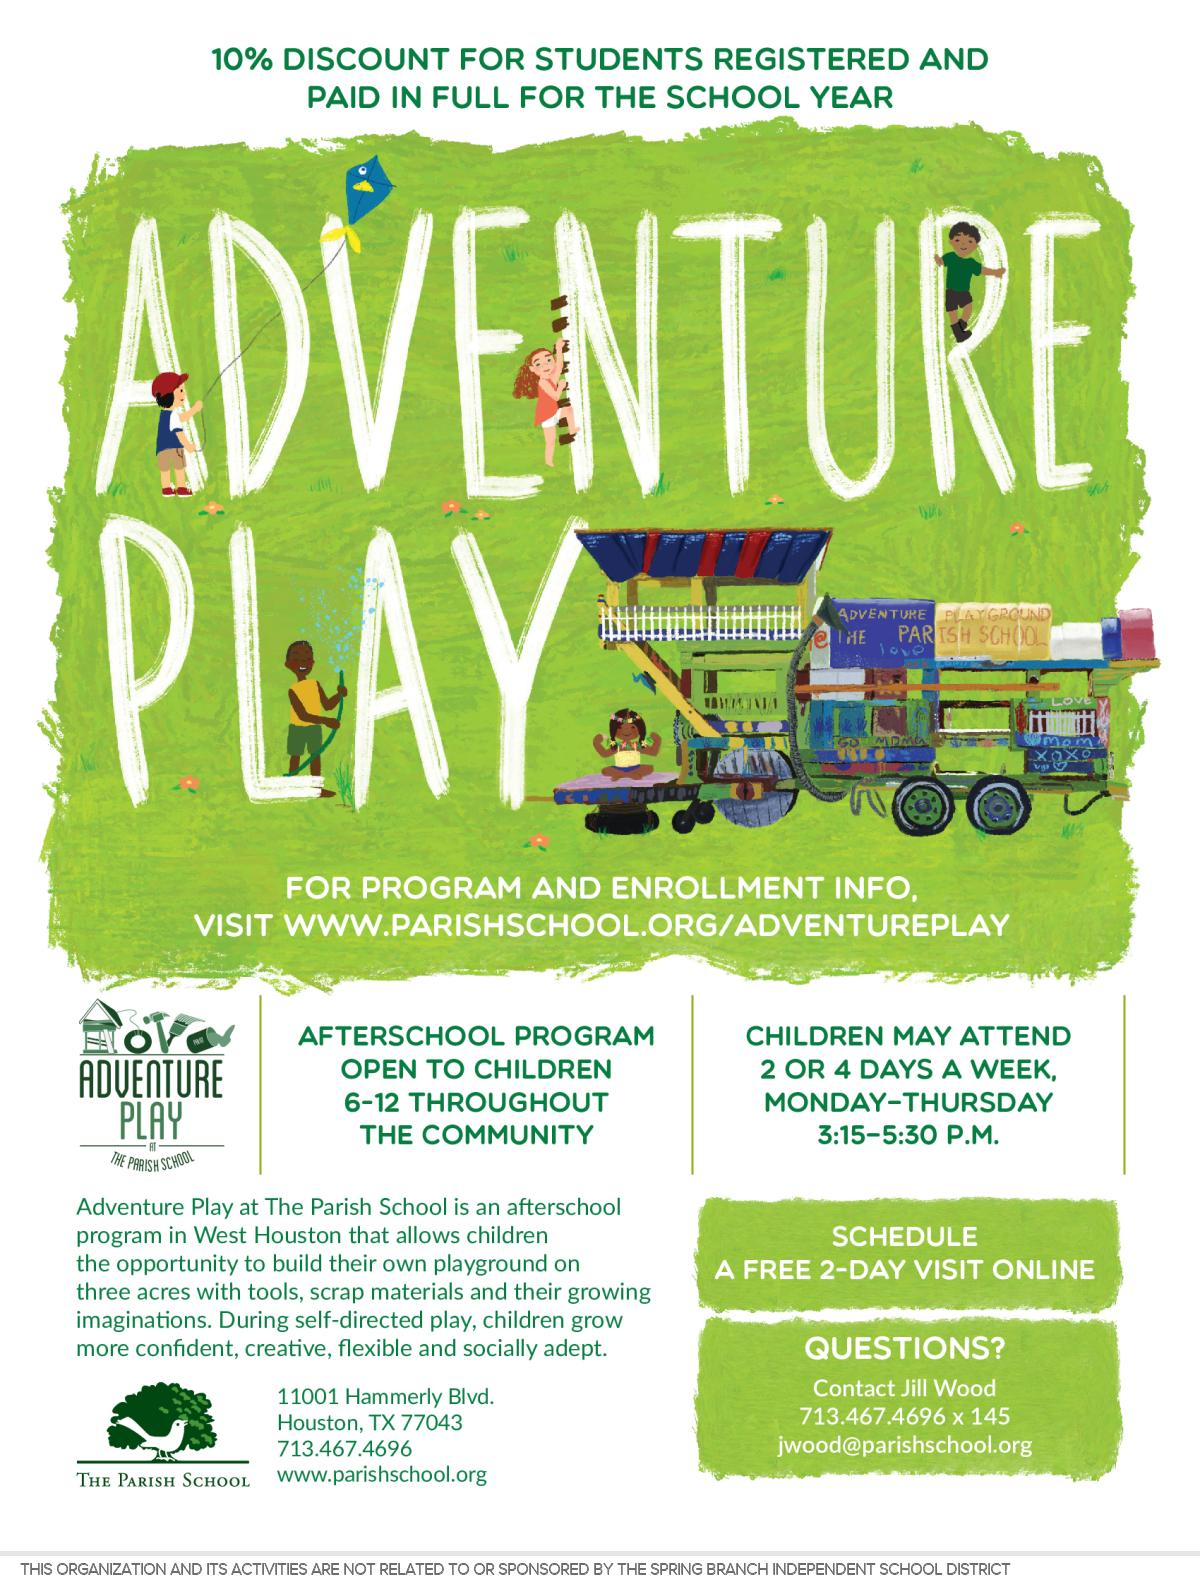 Image of a flyer titled Adventure Play Afterschool Program